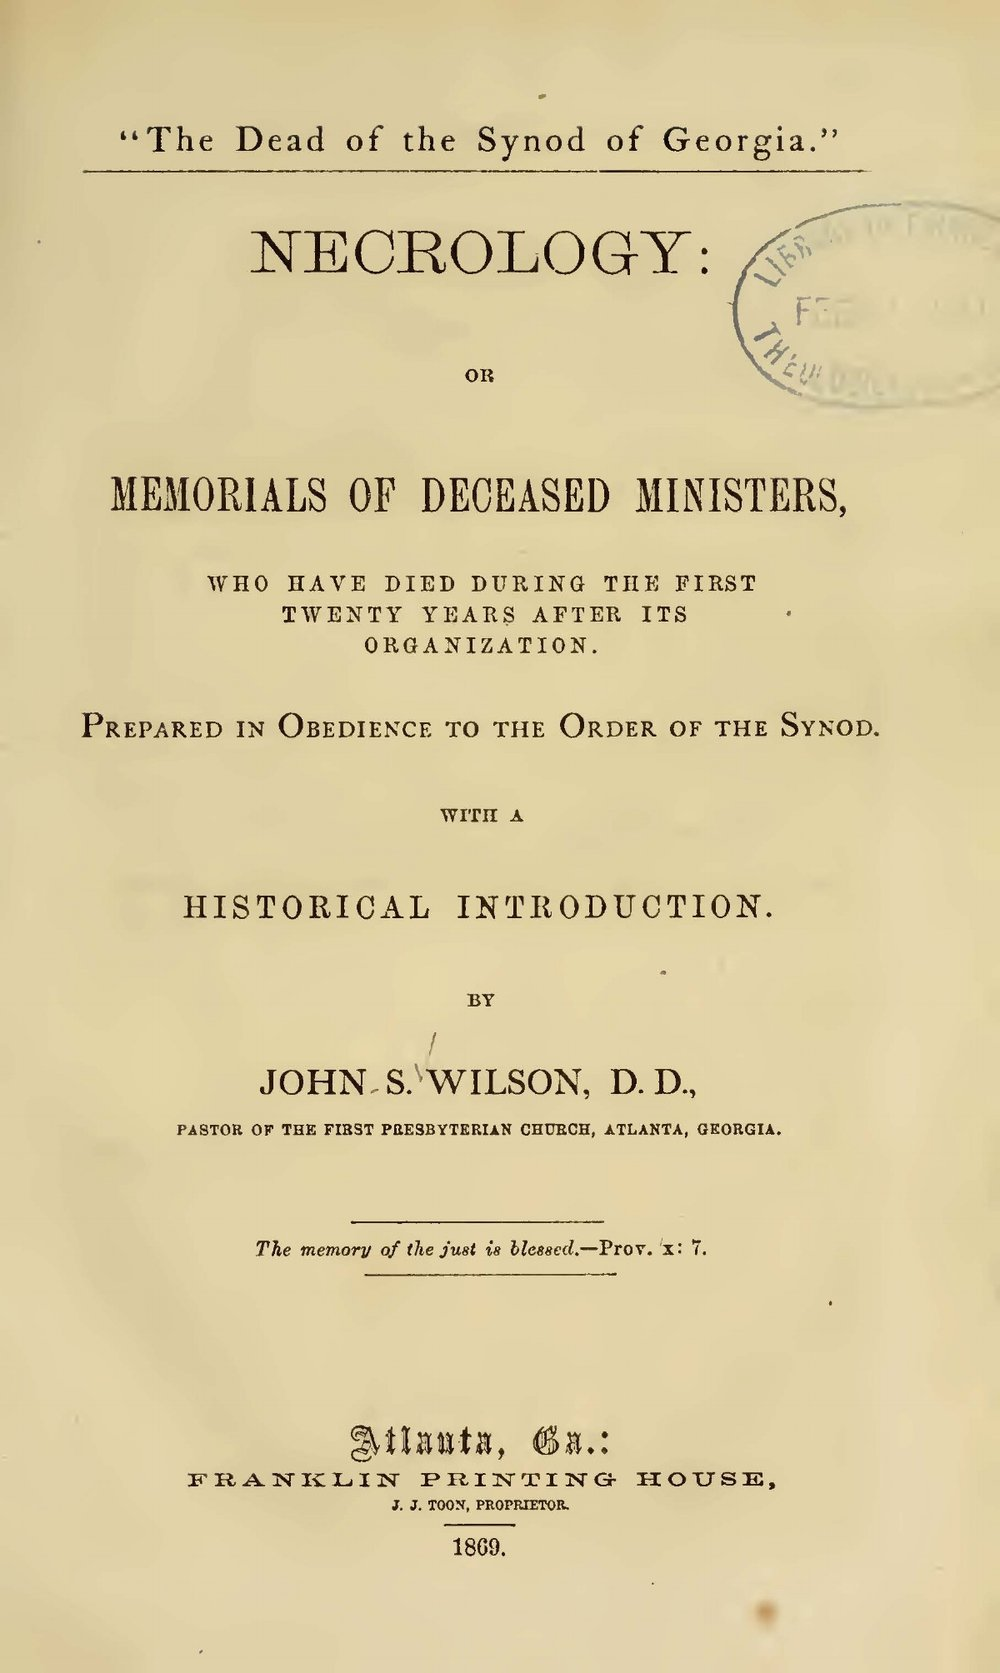 Wilson, John Simpson, The Dead of the Synod of Georgia Title Page.jpg